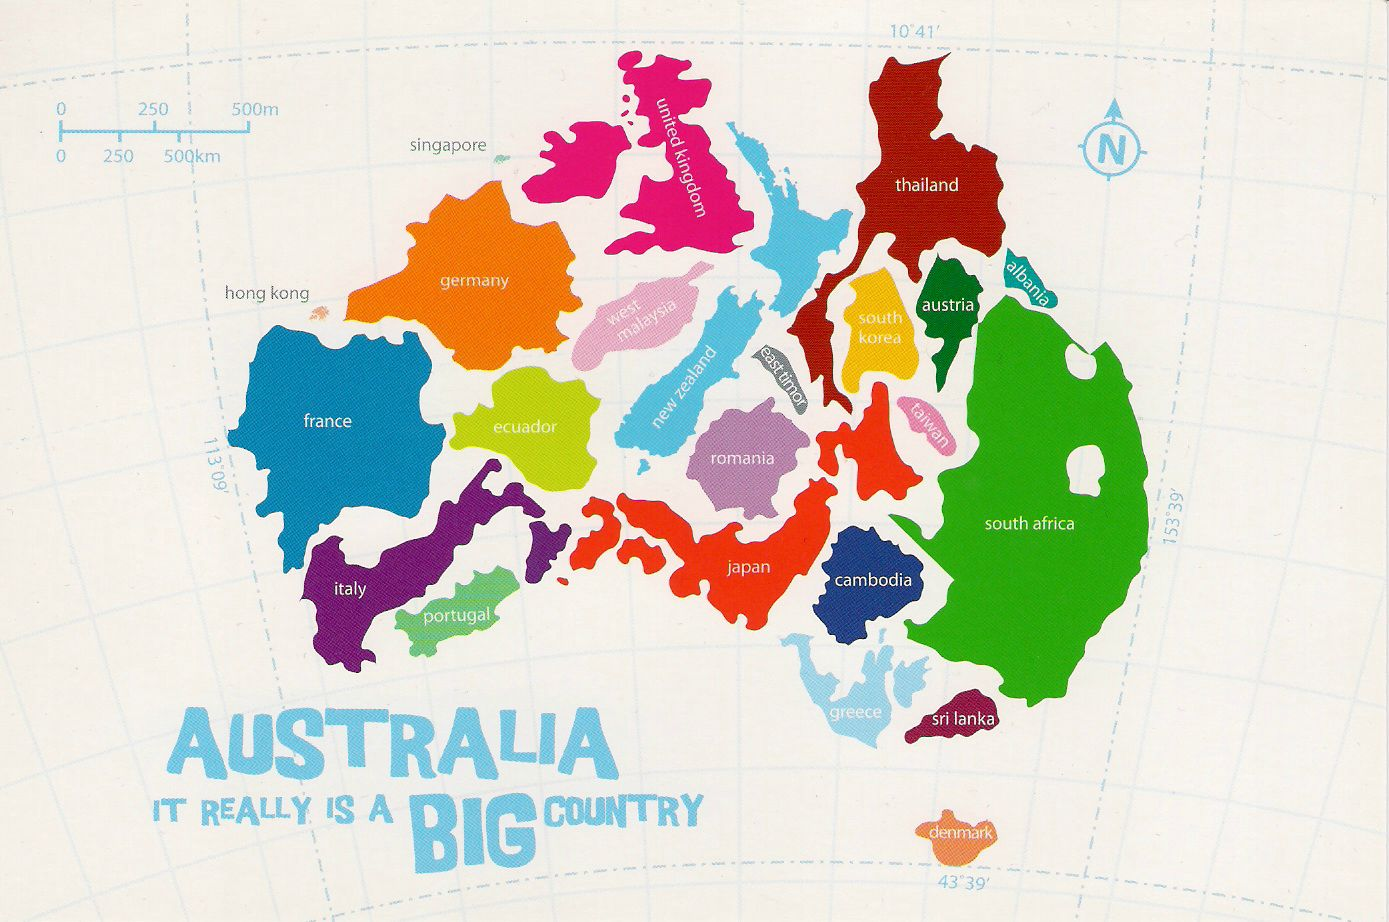 Comparison Of Australias Size With Over Other Countries - Portugal map size